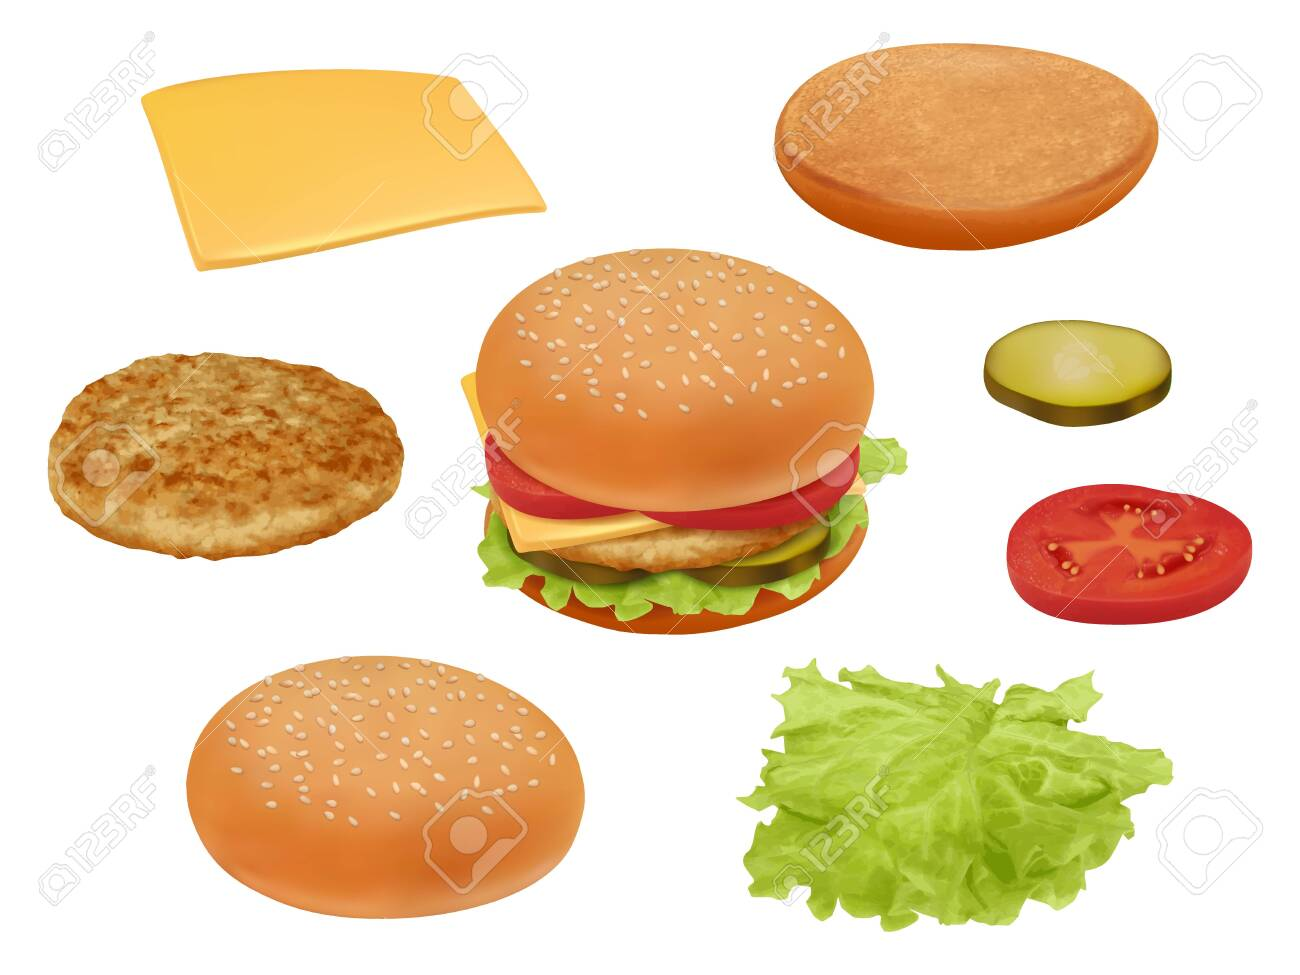 Hamburgher. Realistic fast food ingredients vegetables tomato beef meal salad delicious food vector constructor. Illustration hamburger or cheeseburger, lettuce and bread - 133932698